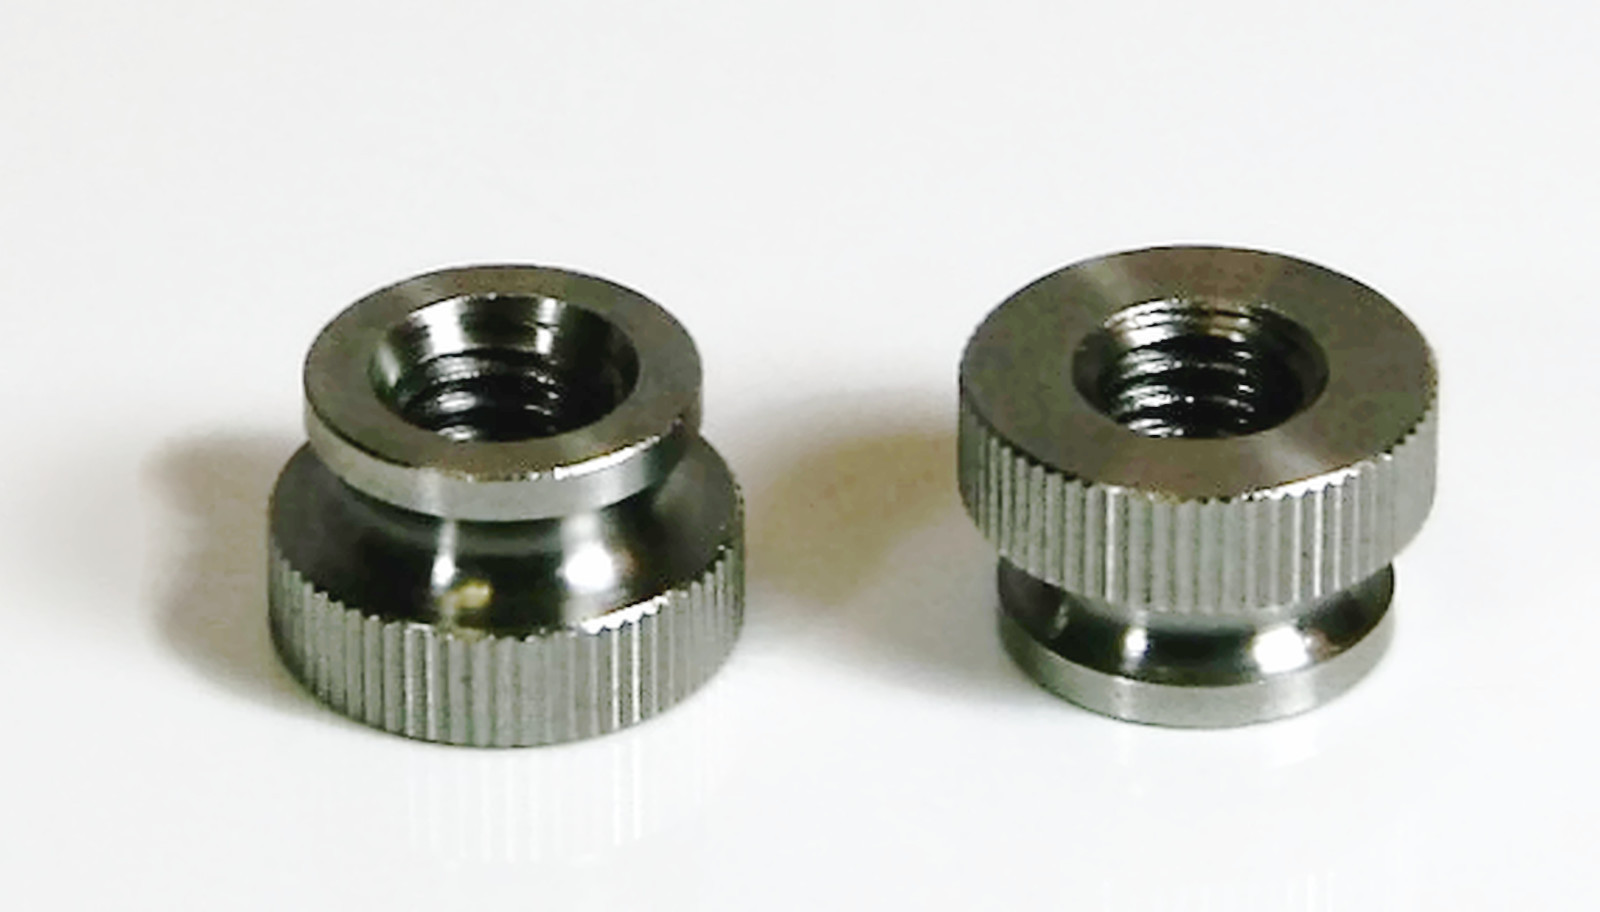 Knurled Thumb Nut 18 8 Stainless Steel Nuts Size 2 56